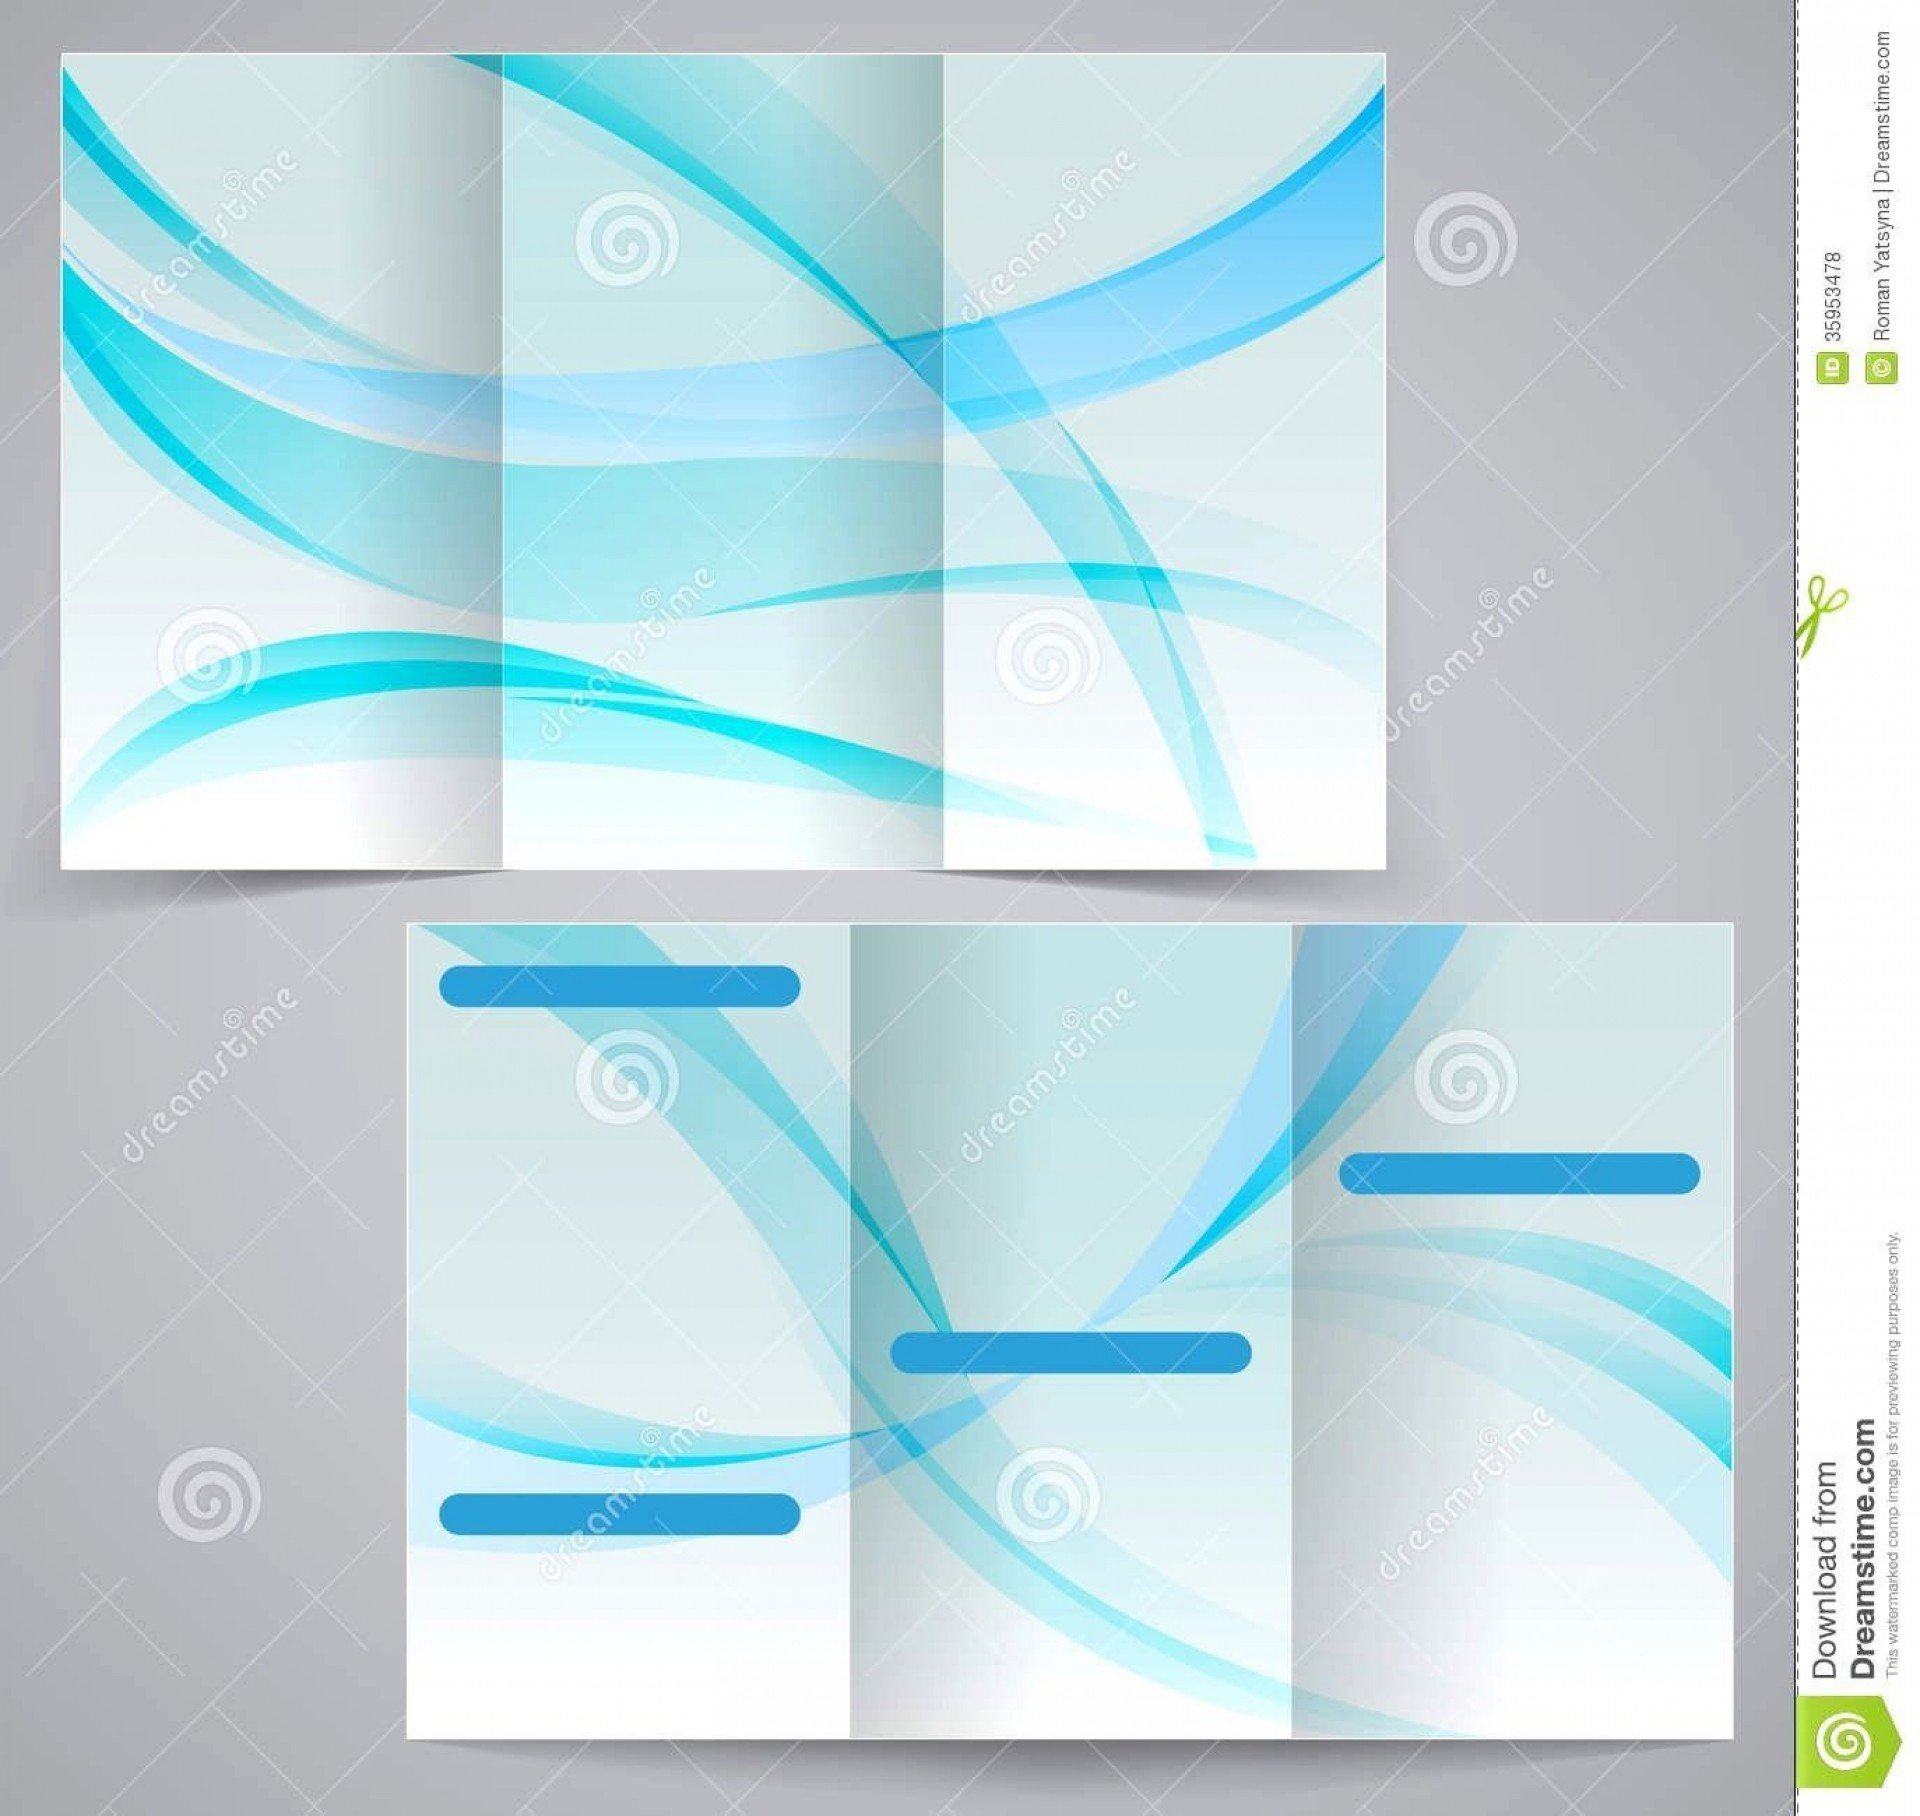 000 Unique Brochure Template For Word 2010 Concept  Download Microsoft Free Blank Tri Fold1920